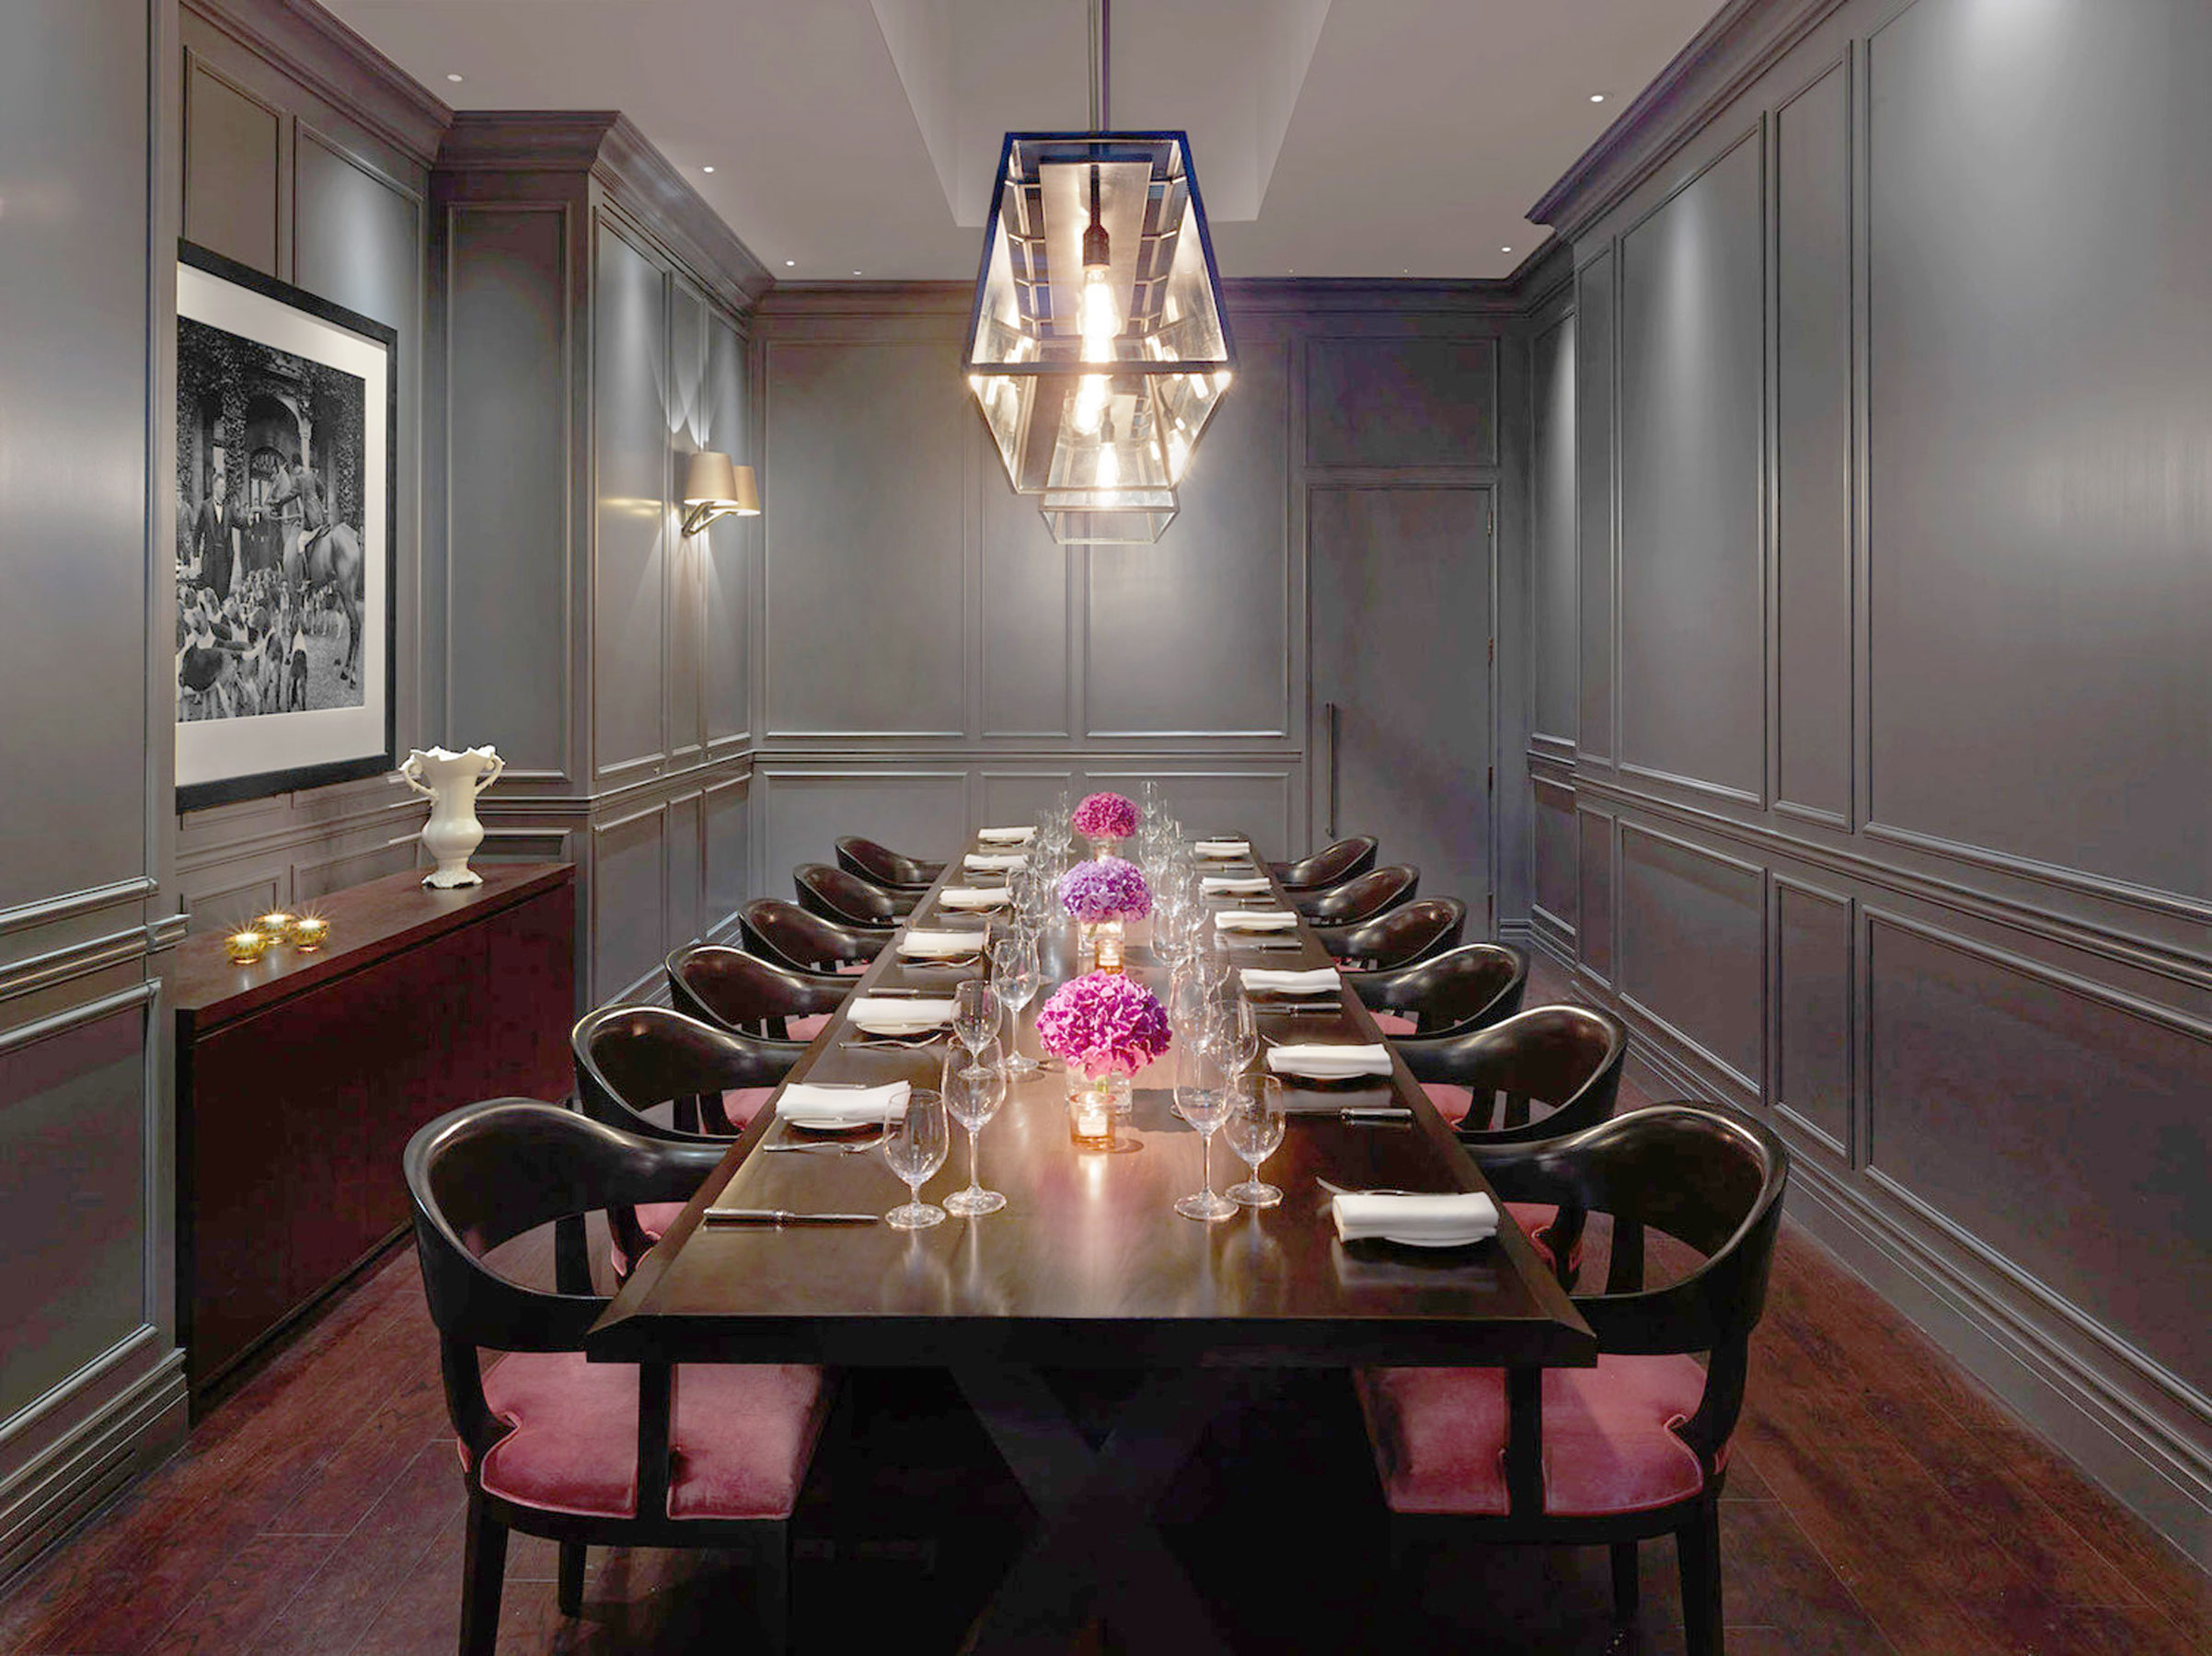 private-dining-room.jpg